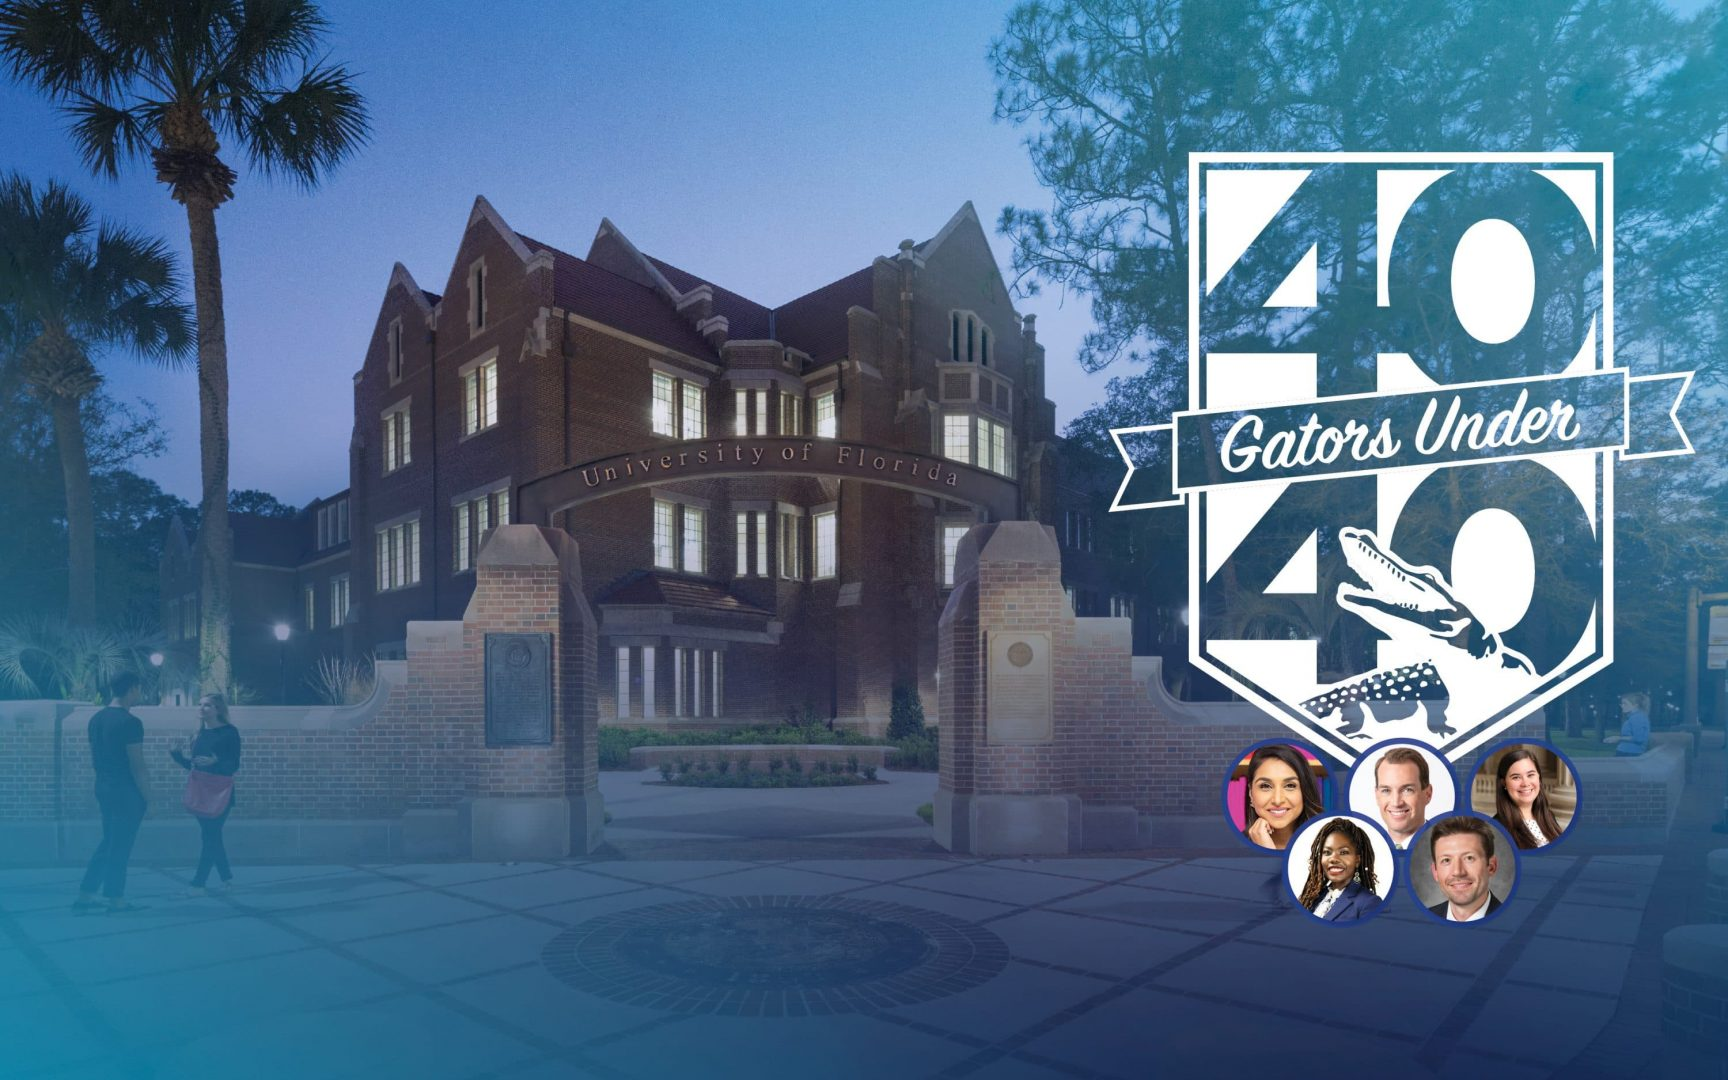 View of Heavener Hall with a 40 Gators Under 40 logo to the right with five small photos of the award recipients.